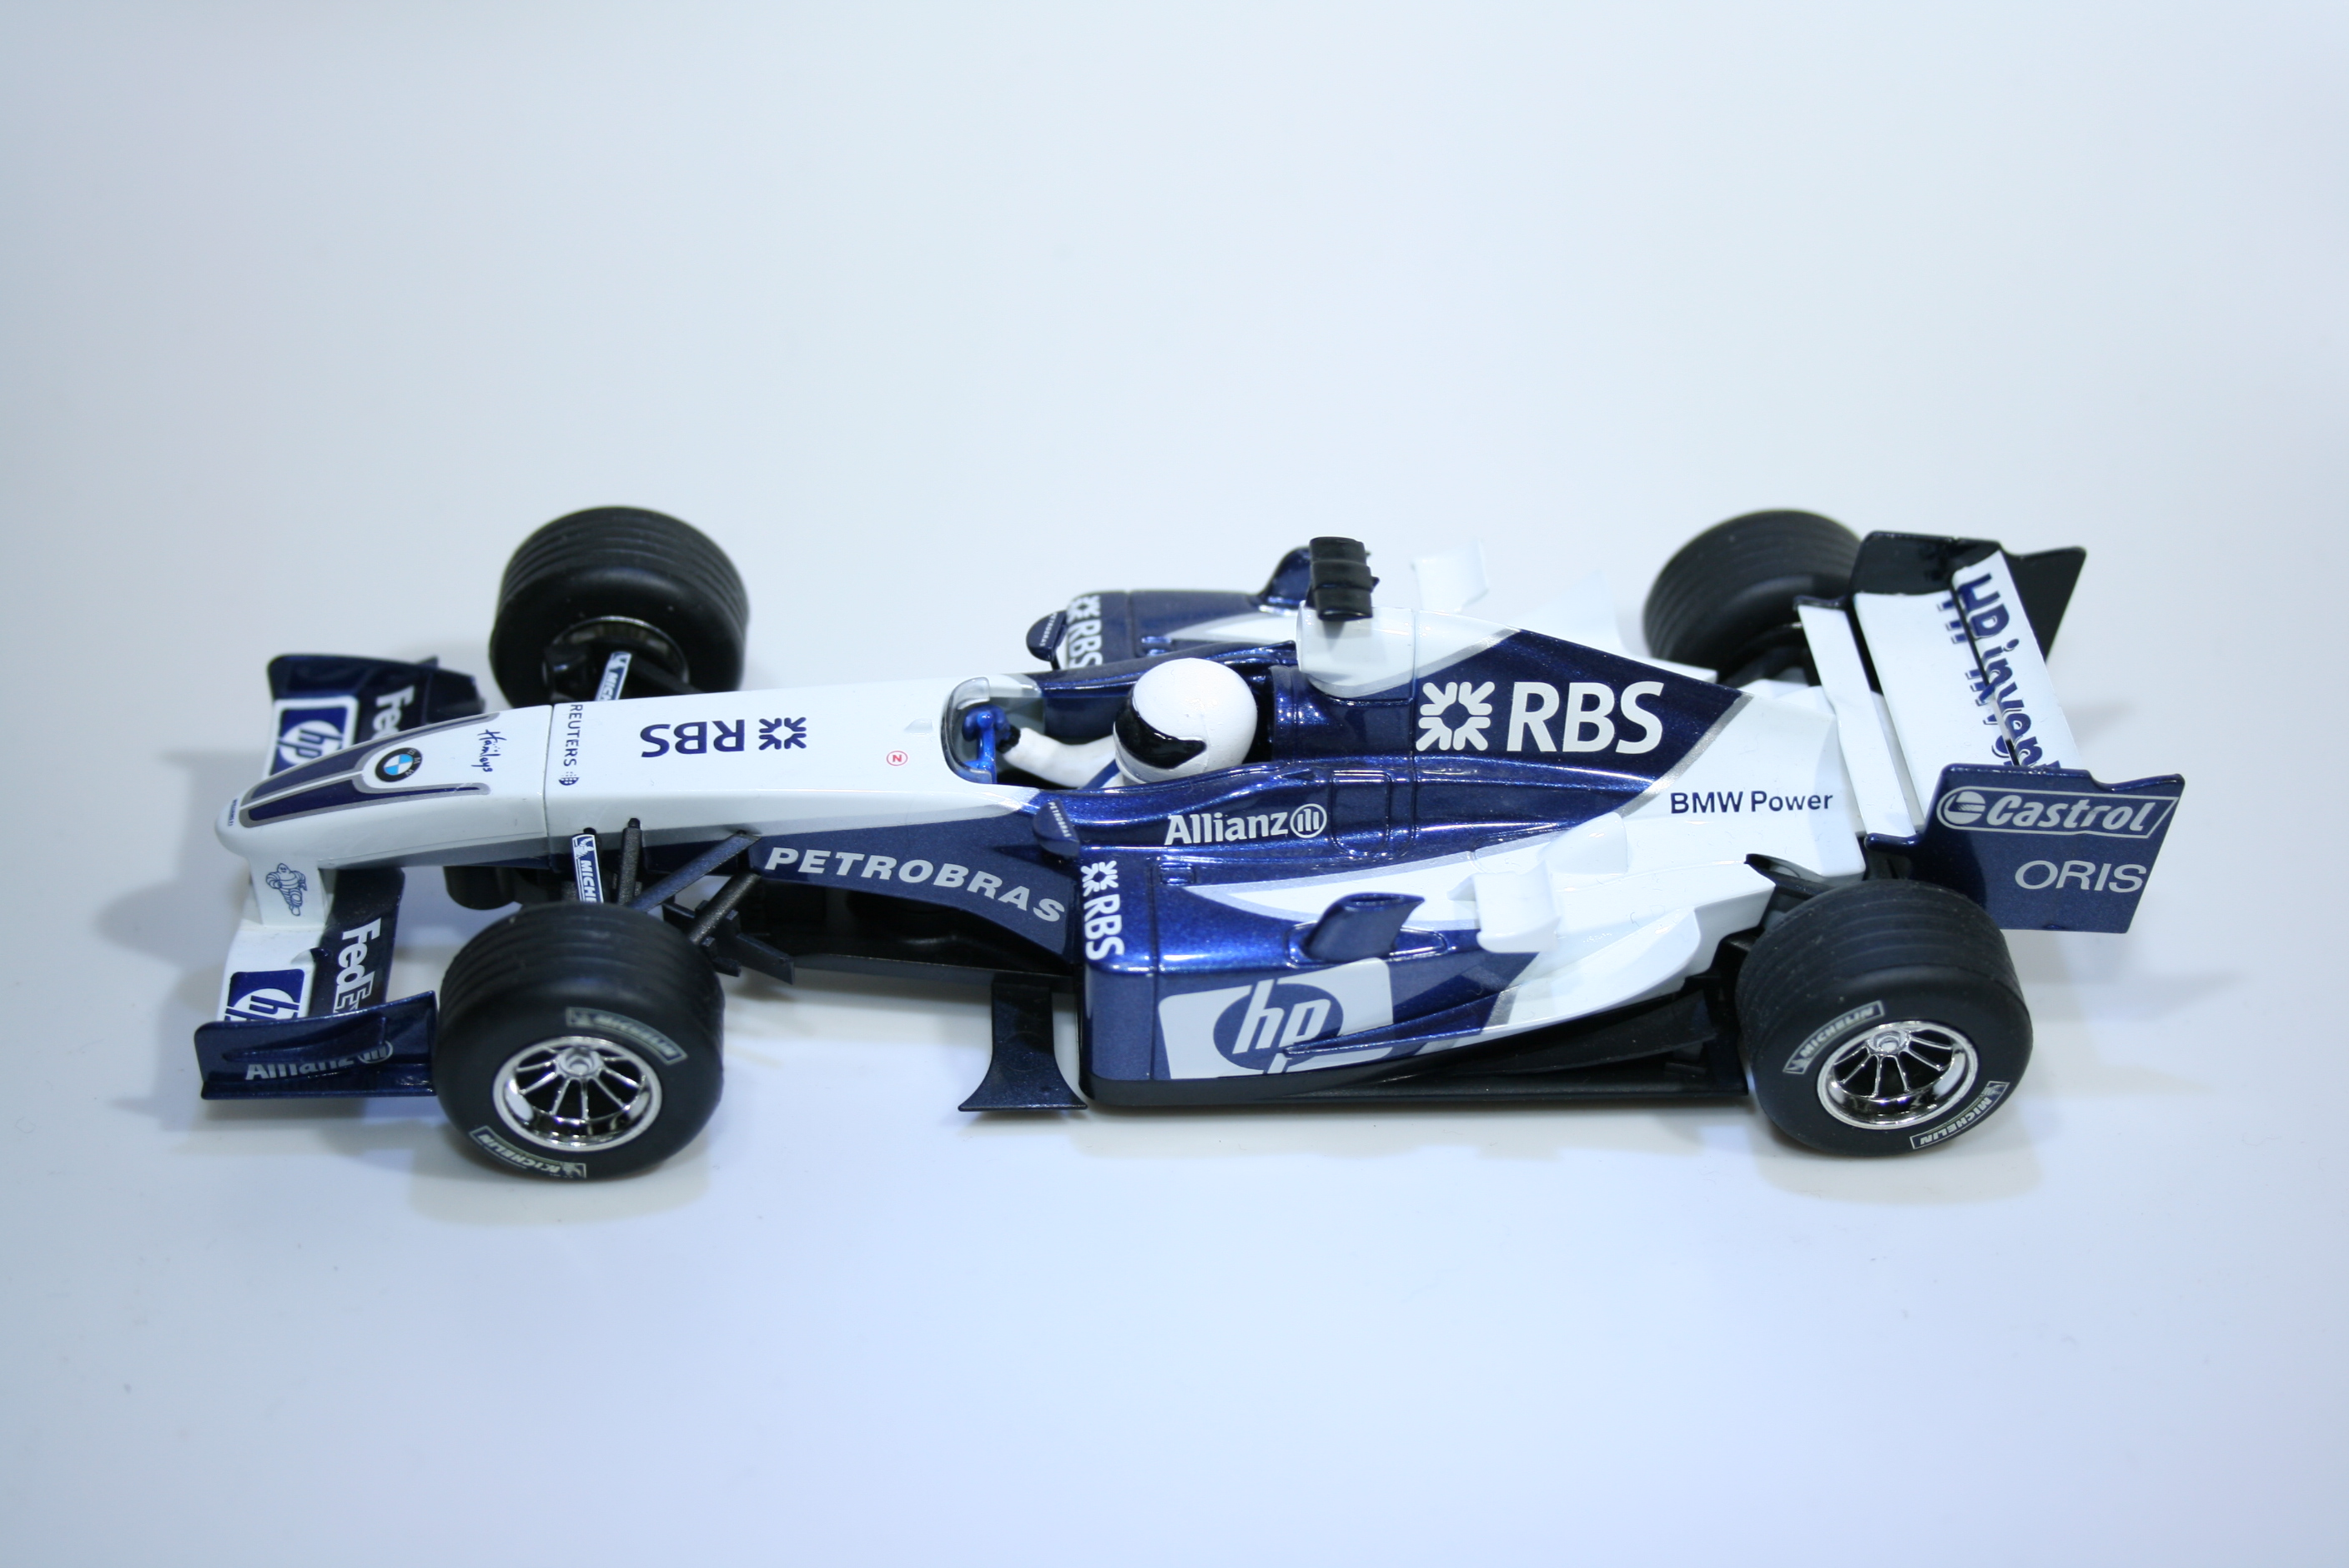 861 Williams FW27 2005 N Heidfeld Scalextric C2647 2005